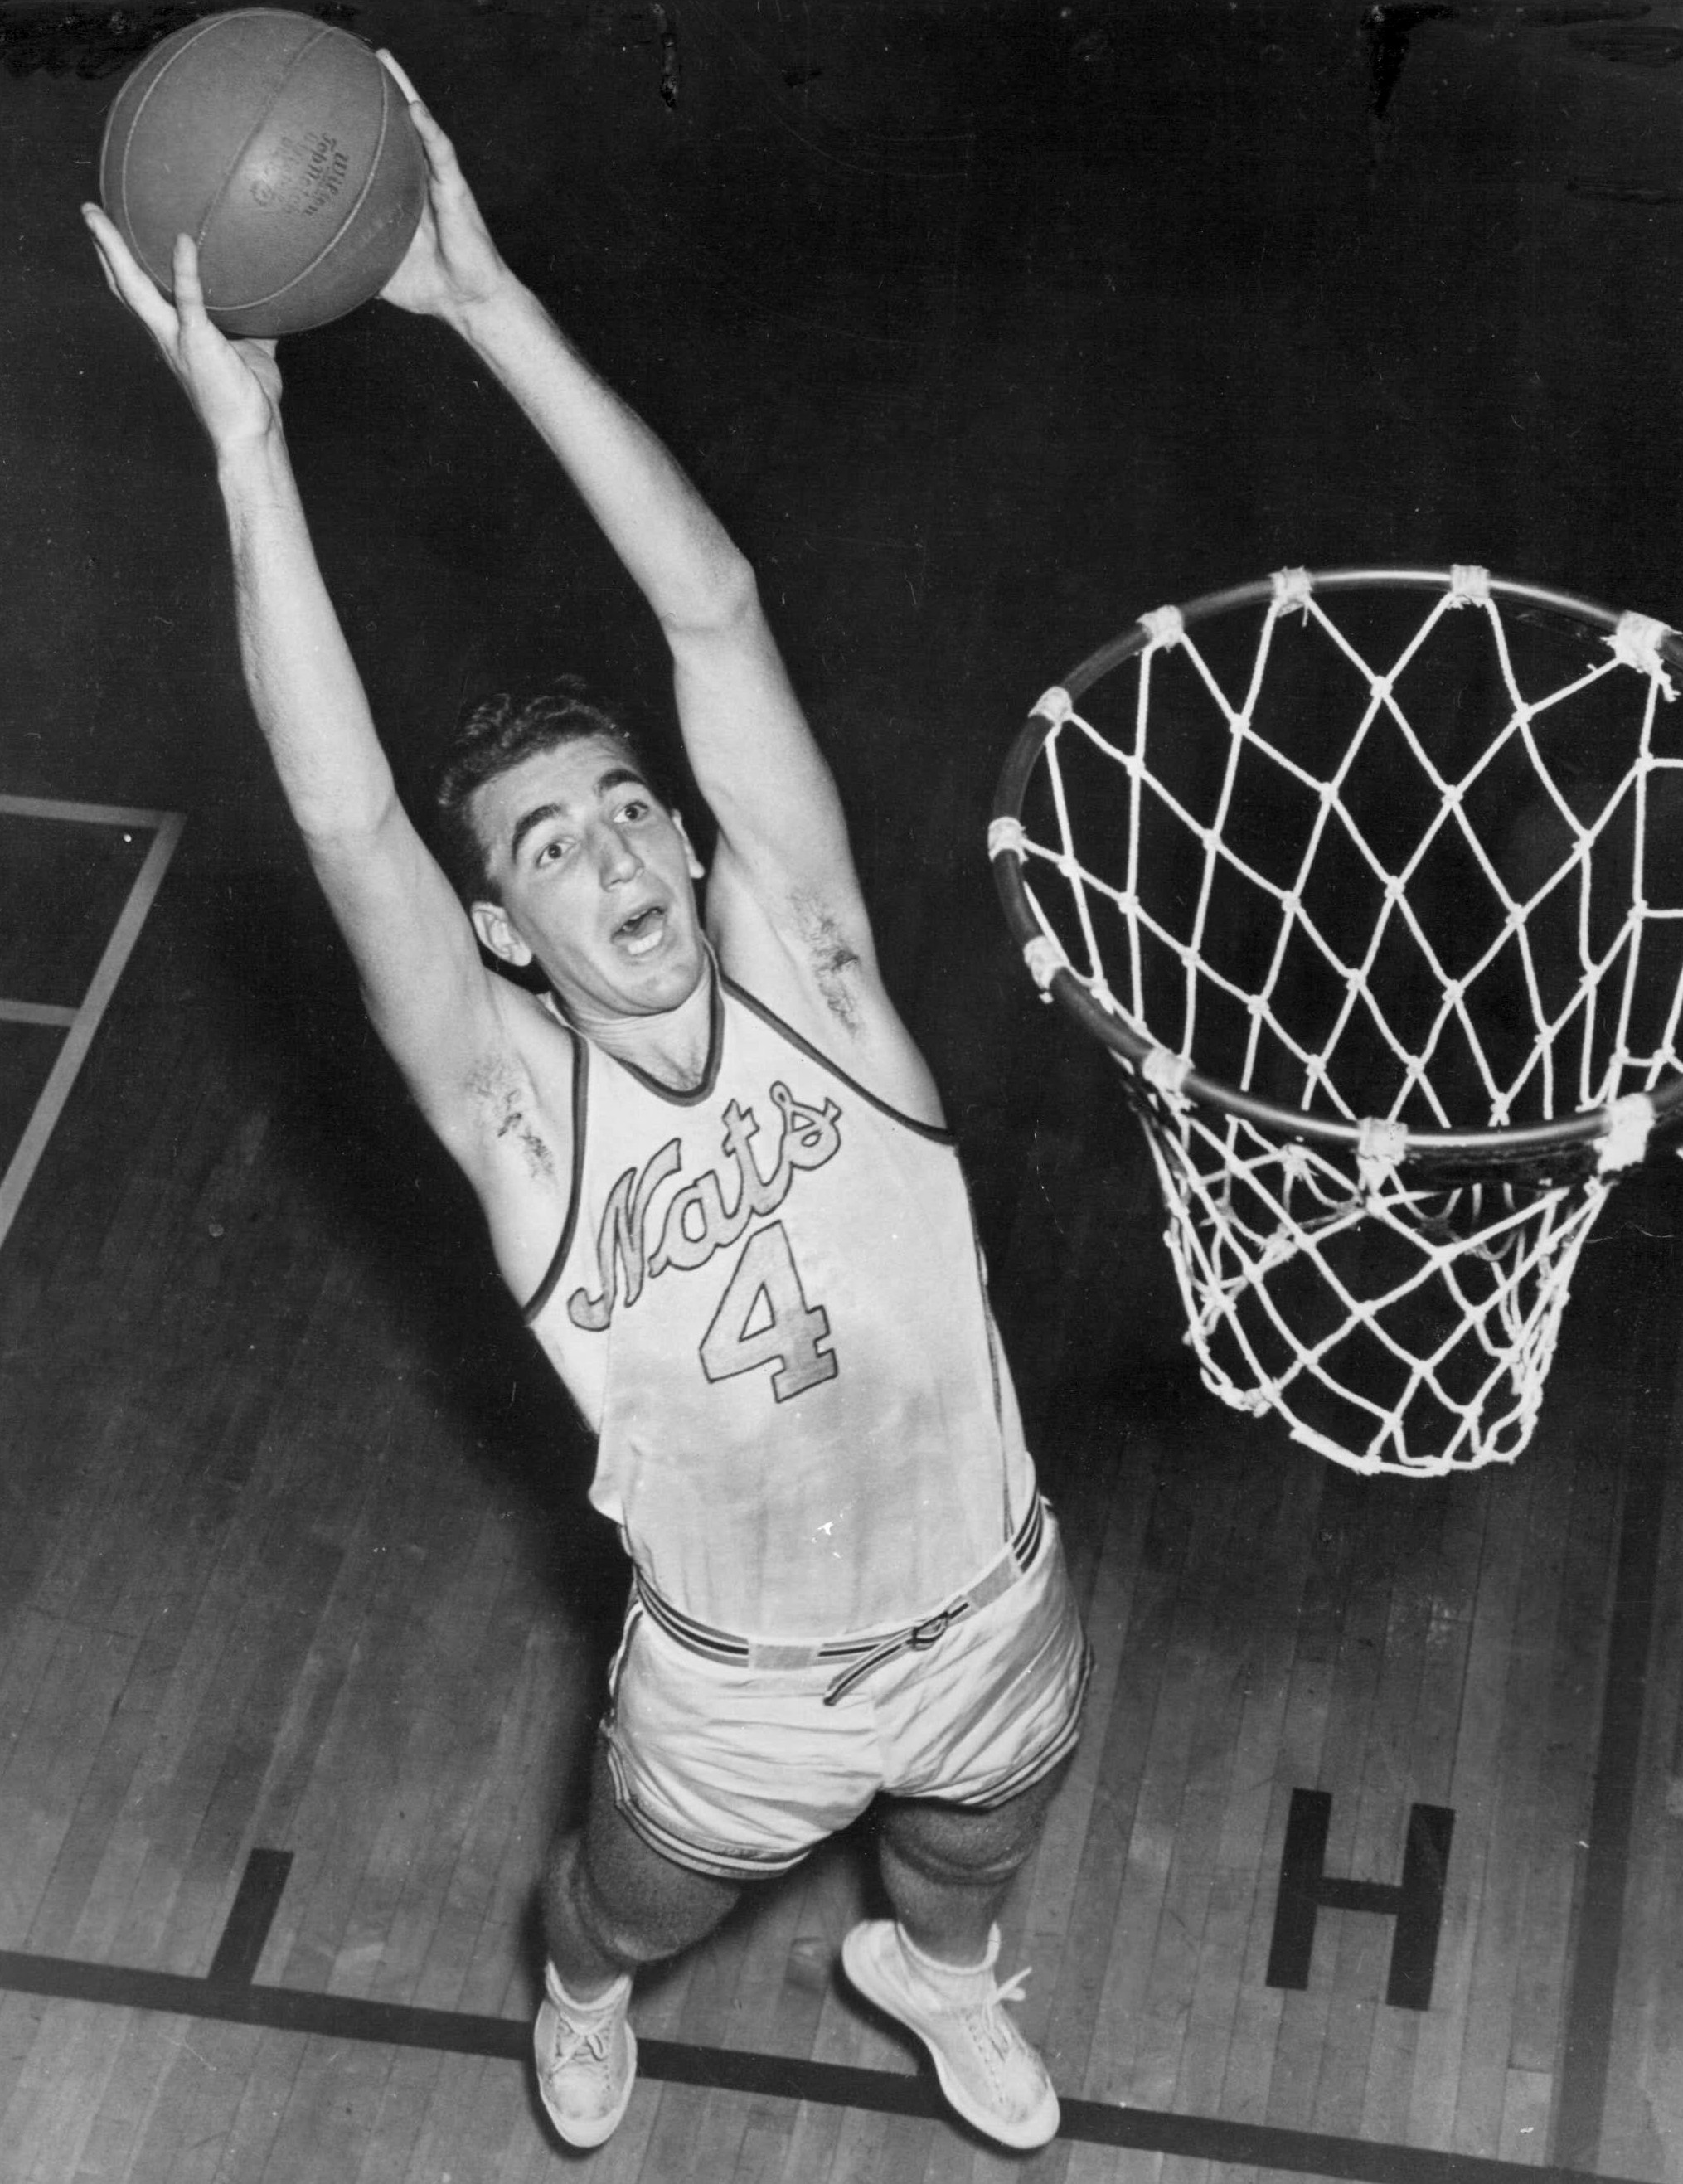 Dolph_Schayes_1955_(1).jpeg